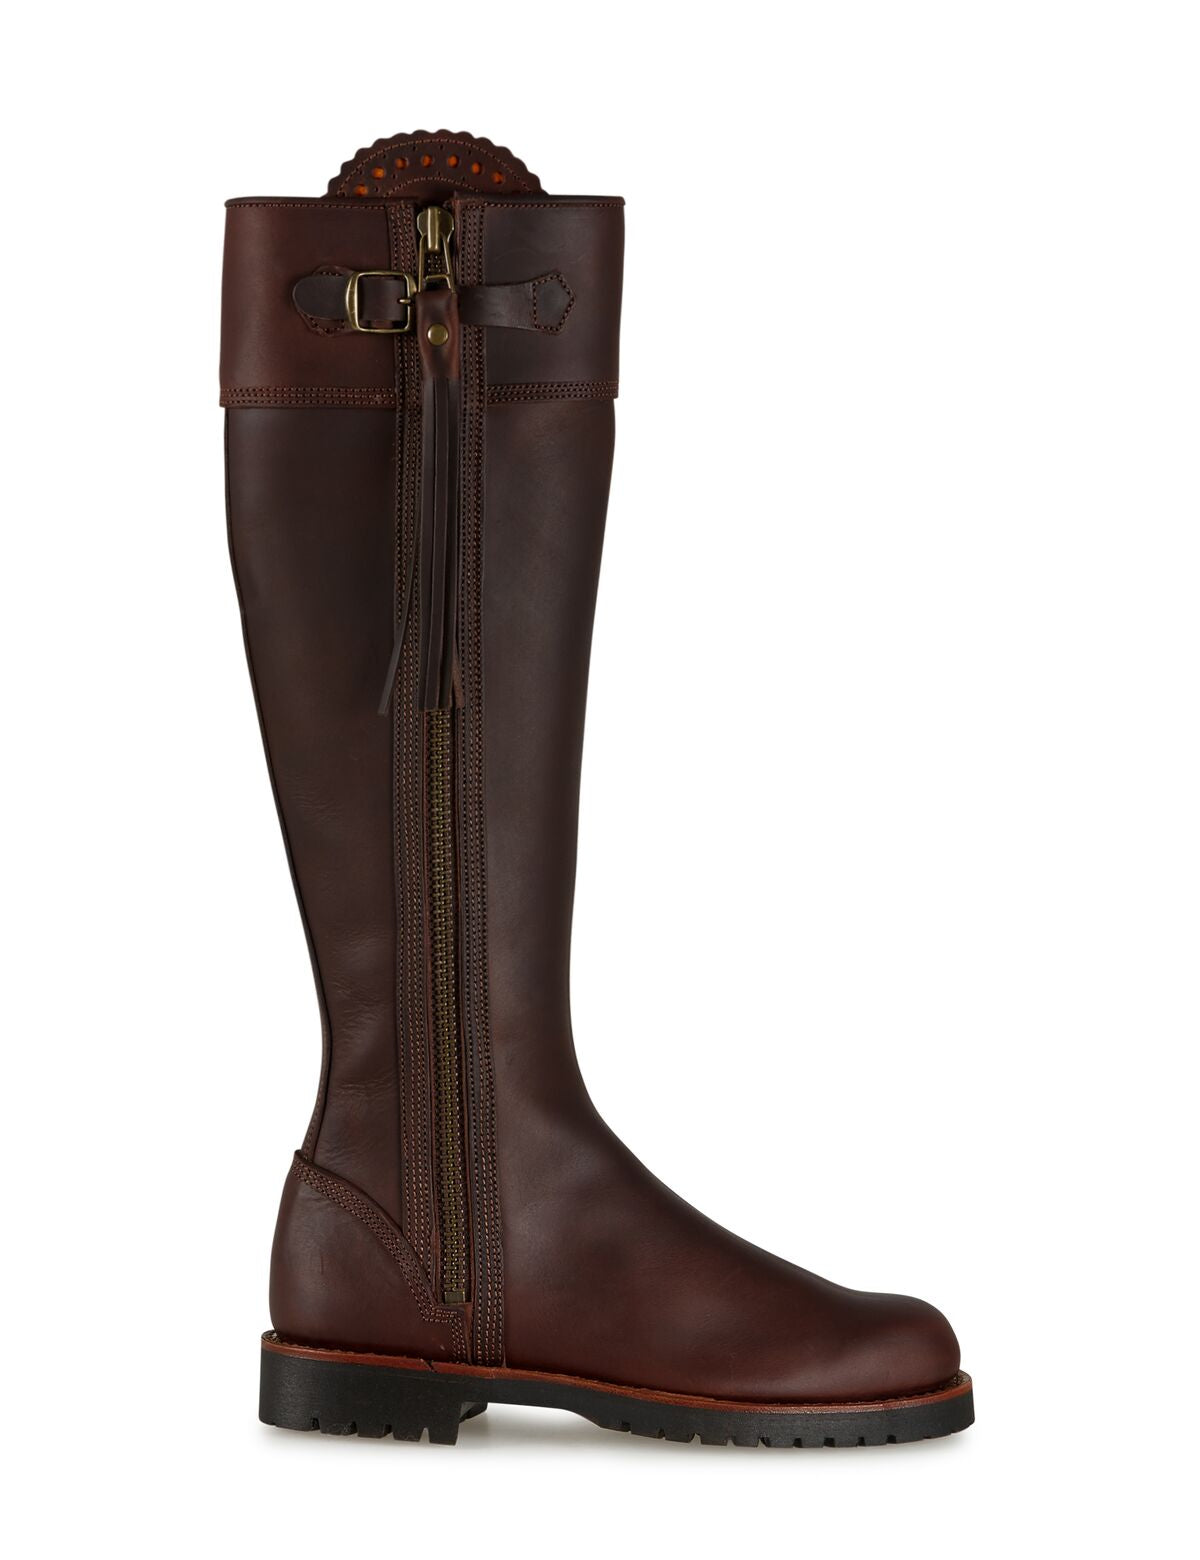 Penelope Chilvers Long Tassel Boot for Ladies in Conker